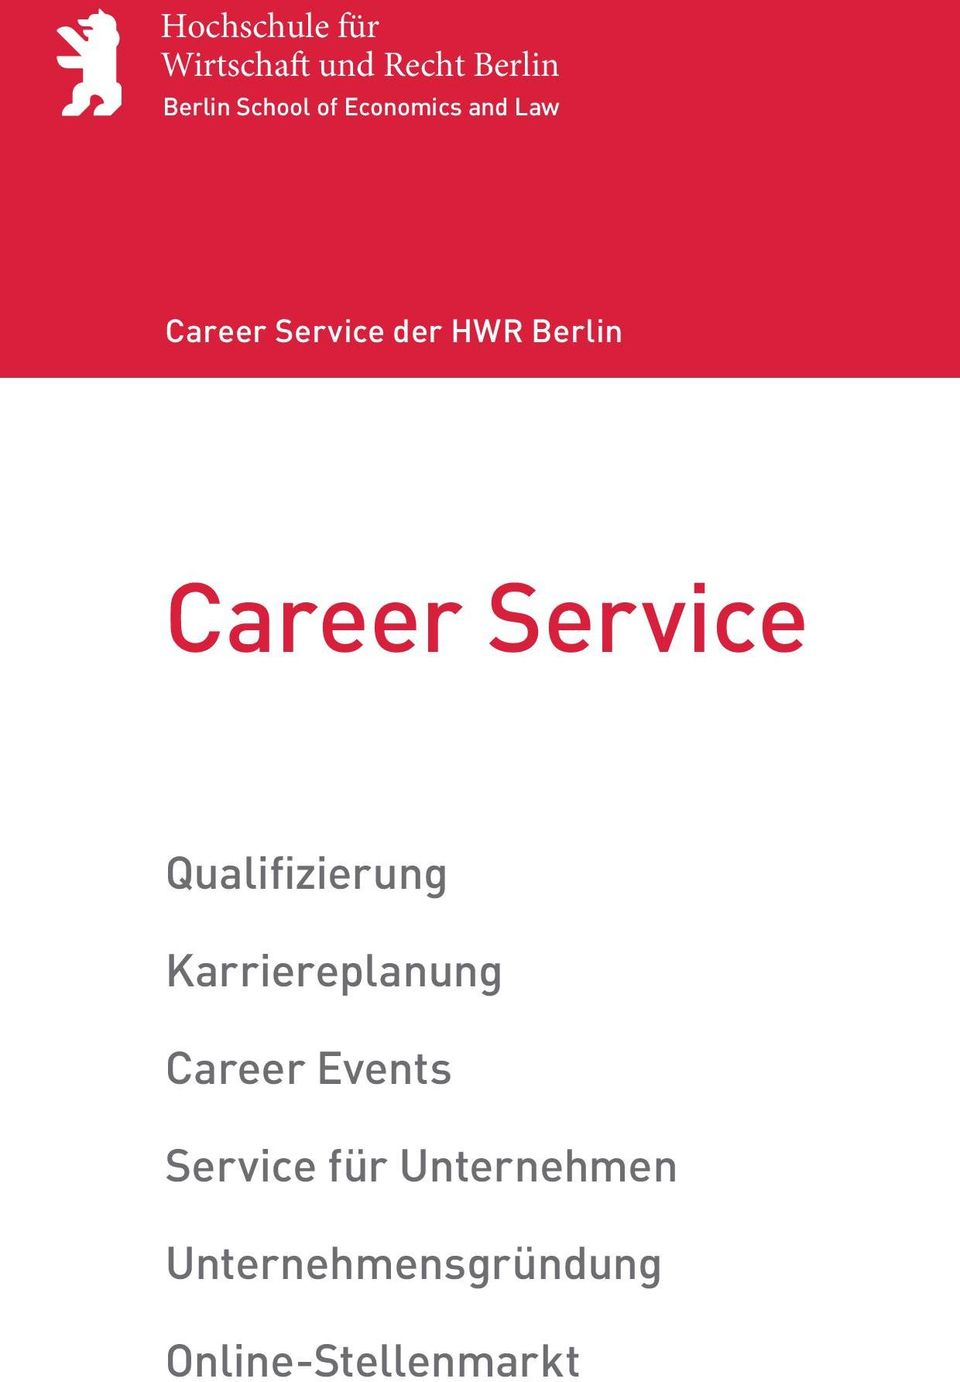 Service Qualifizierung Karriereplanung Career Events